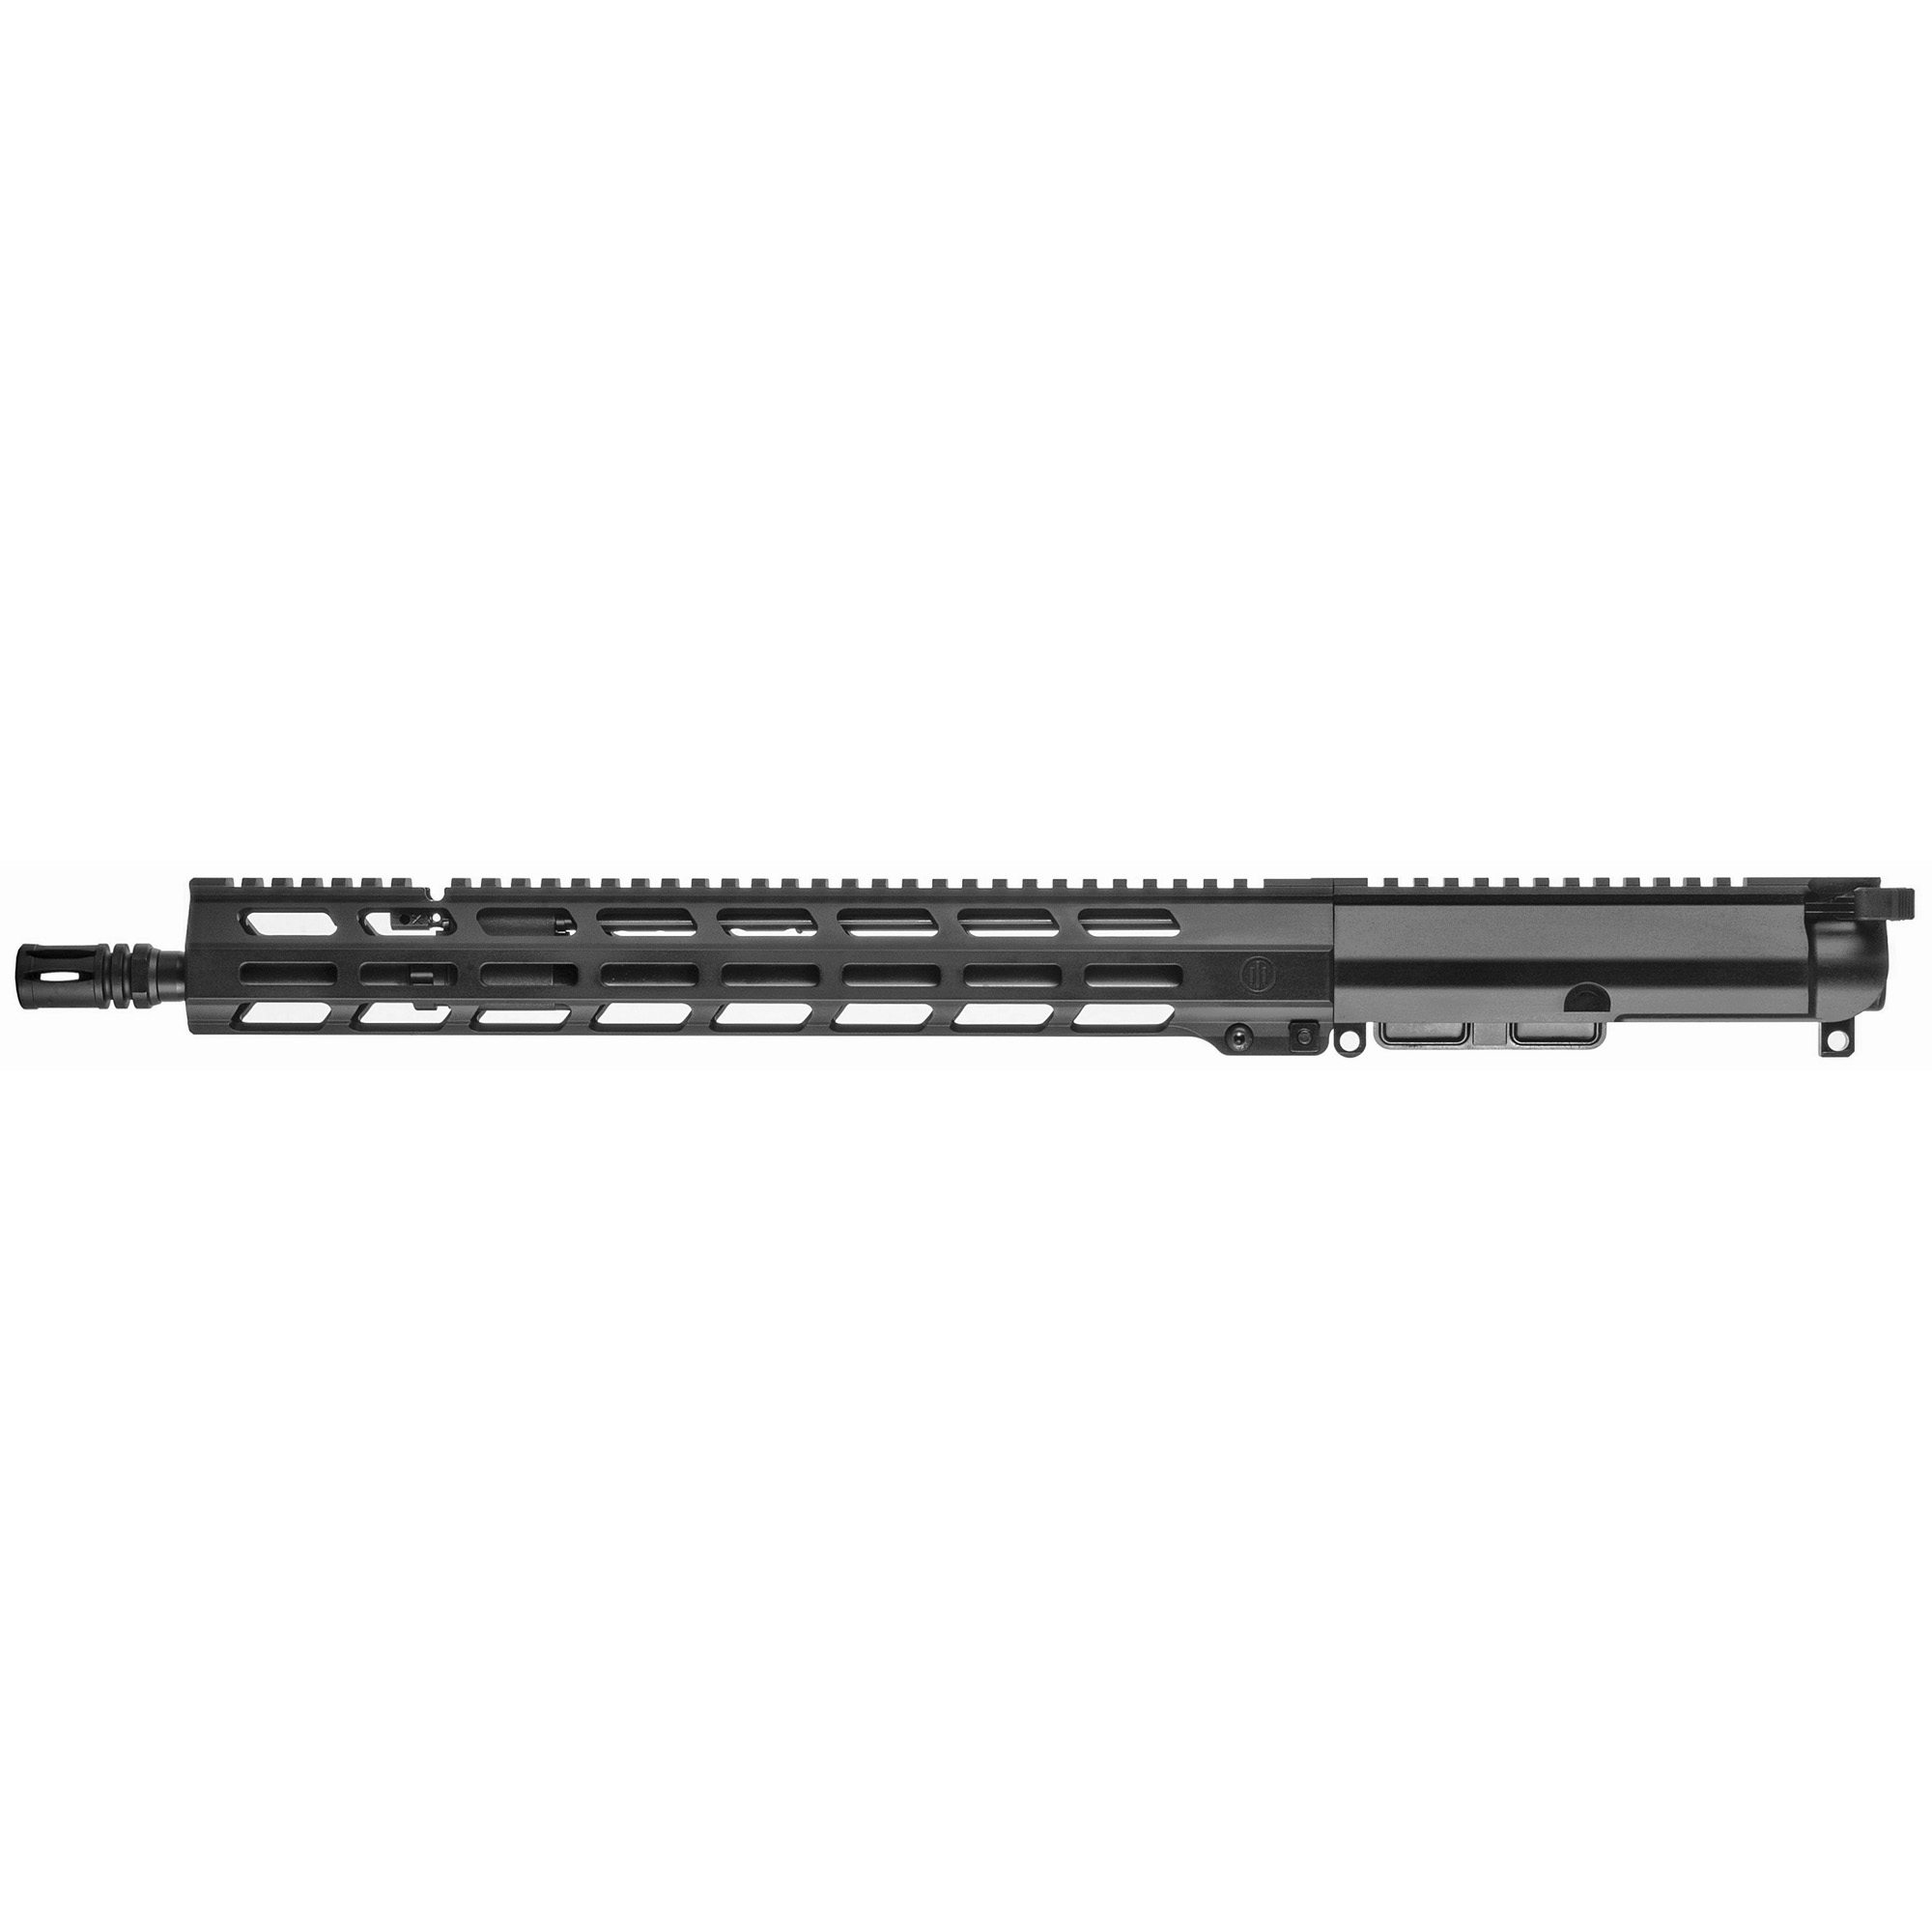 "The PWS MK1 PRO line features the tried and true PWS long stroke piston system. This line is perfect for shooters looking for a cost-effective piston system firearm without sacrificing the high-quality standards PWS has been known for over a decade. Featuring a 3-setting adjustable gas system for users with suppressors"" free-float MLOK handguard"" Radian Raptor charging handle"" extruded upper receiver that integrates an extremely solid handguard attachment system"" the MK1 PRO line has an assortment of features ideal for shooters of all levels. Available as a complete upper or complete firearm (both pistol and rifle configurations). As with all PWS complete upper receivers"" they will fit seamlessly to any AR15 lower receiver with no need for add accessories. The PRO line is the best value on the market when it comes to piston driven operating systems"" including high-end features and custom components."